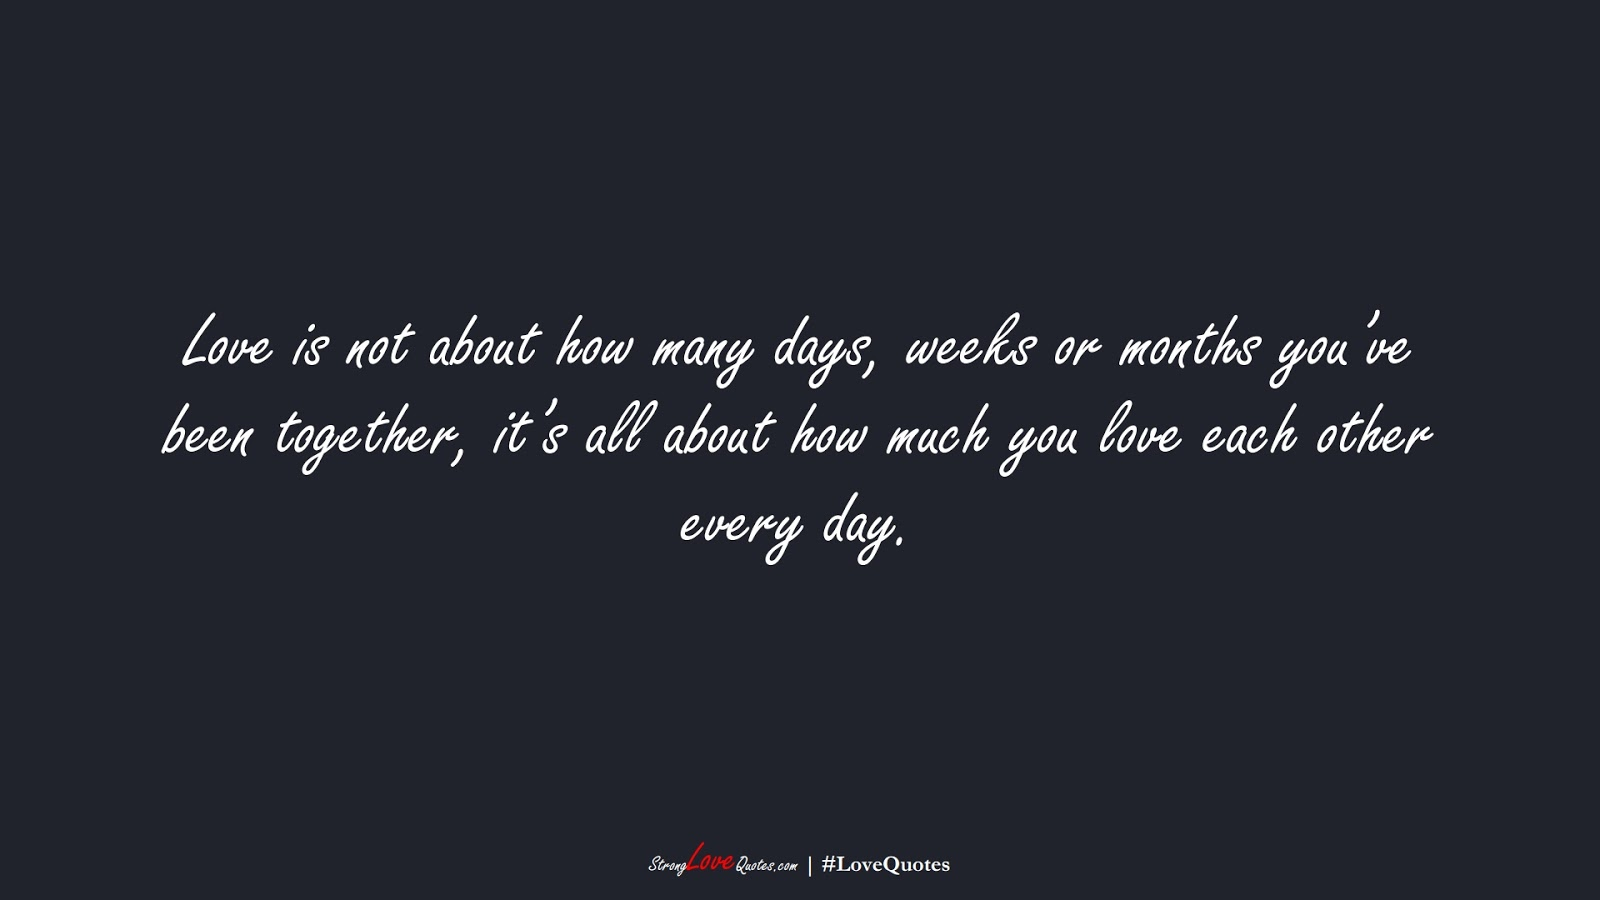 Love is not about how many days, weeks or months you've been together, it's all about how much you love each other every day.FALSE